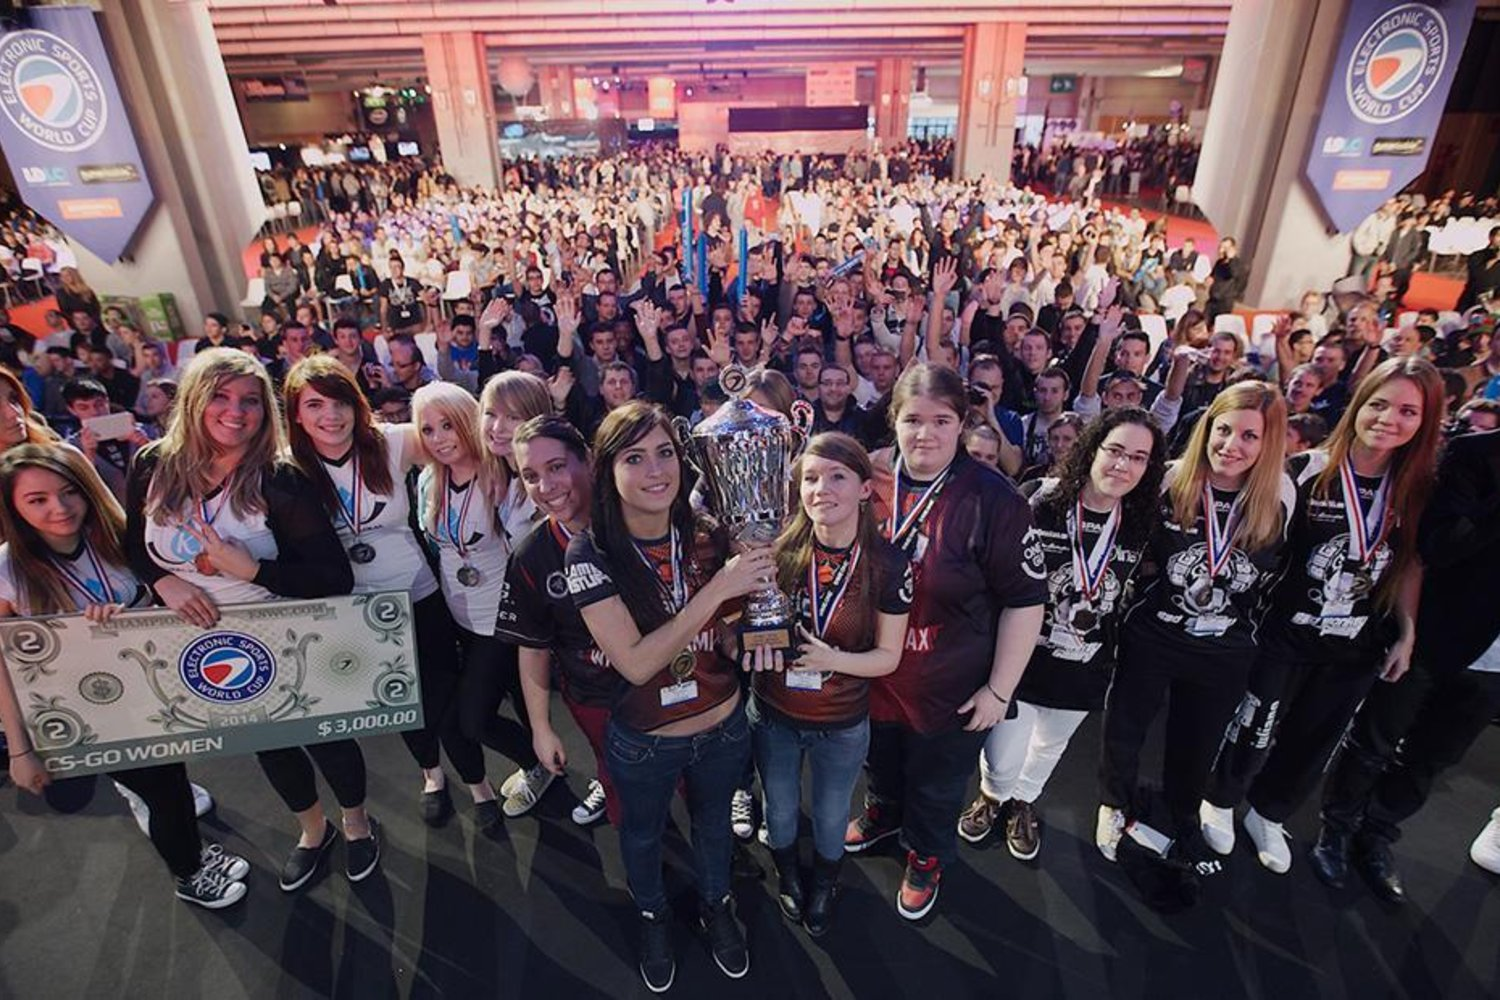 CS:GO Women Tournament At ESWC (Photo: ESWC)